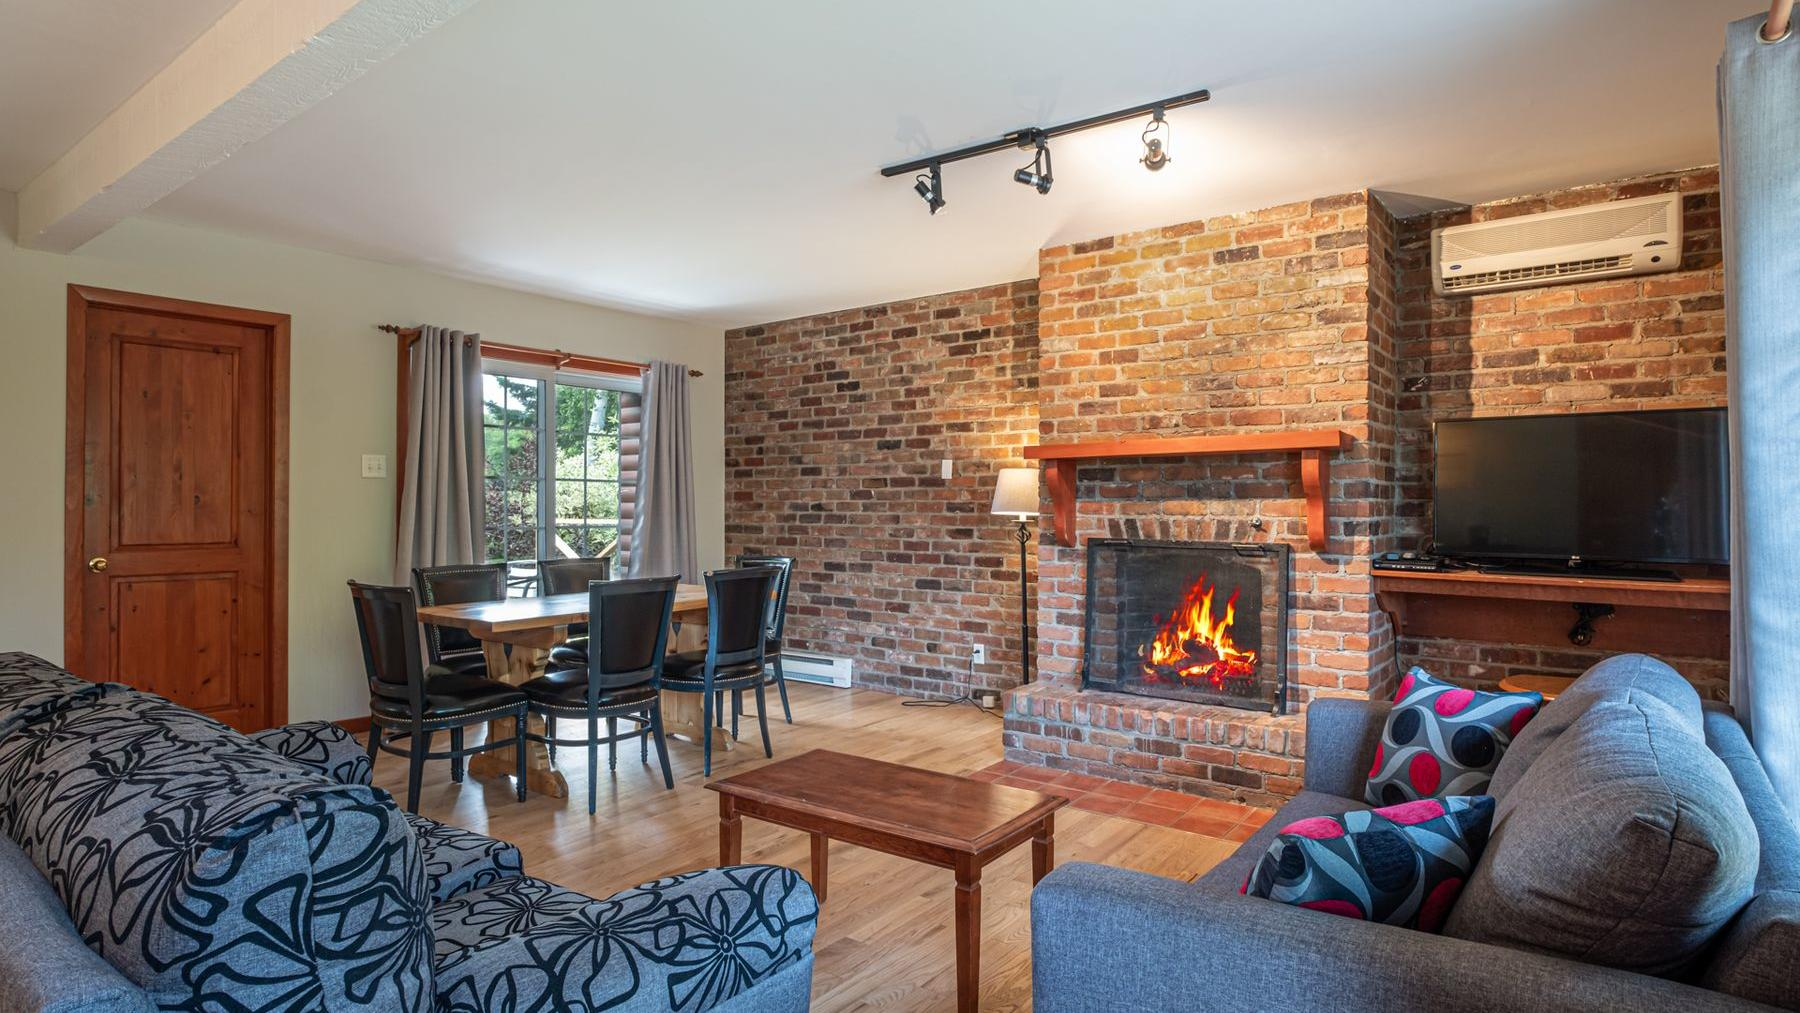 Living room with fireplace, comfy couches, and dining table